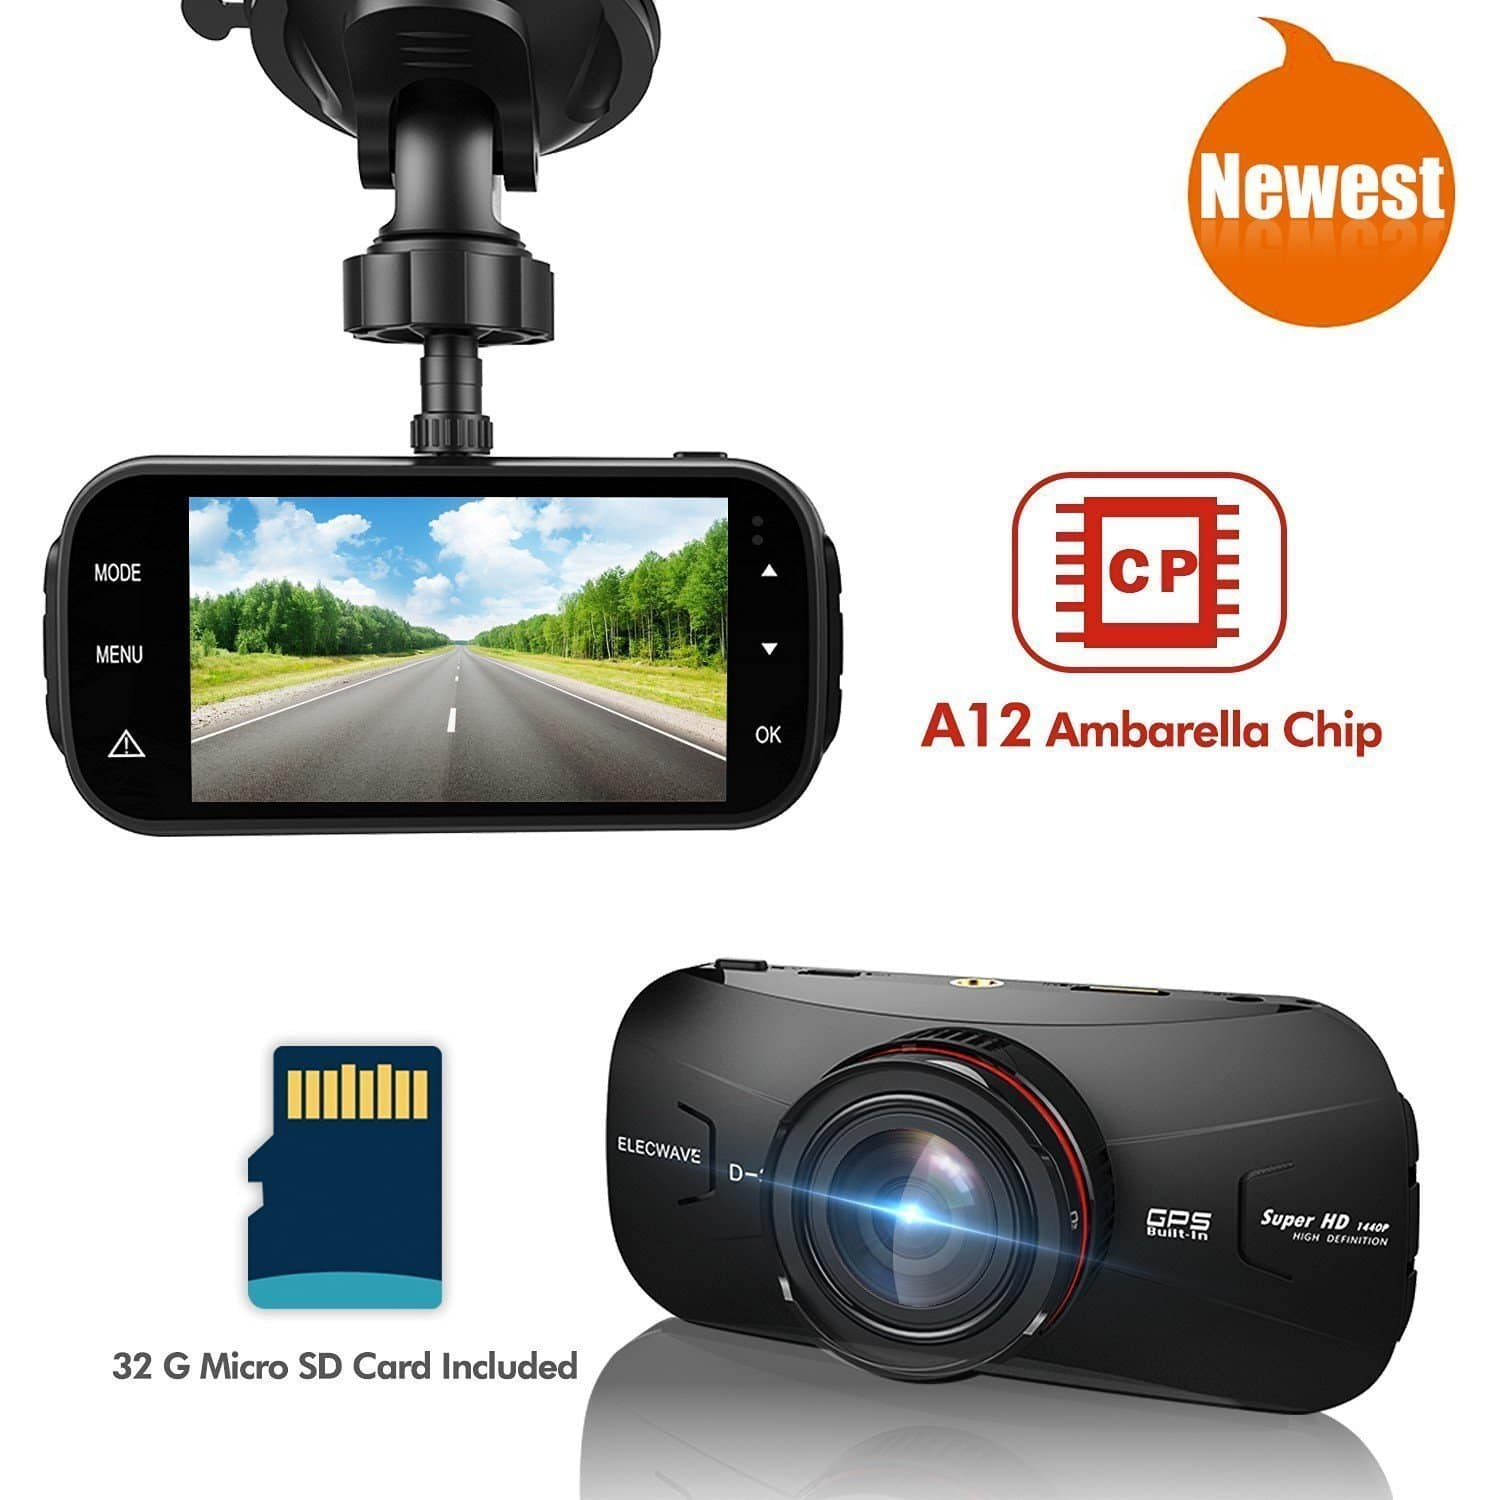 Elecwave EW-D300 1440P 2K Ultra Full HD 170 Degree with GPS  DVR  Car Dash Camera -$44.99 + Free Shipping